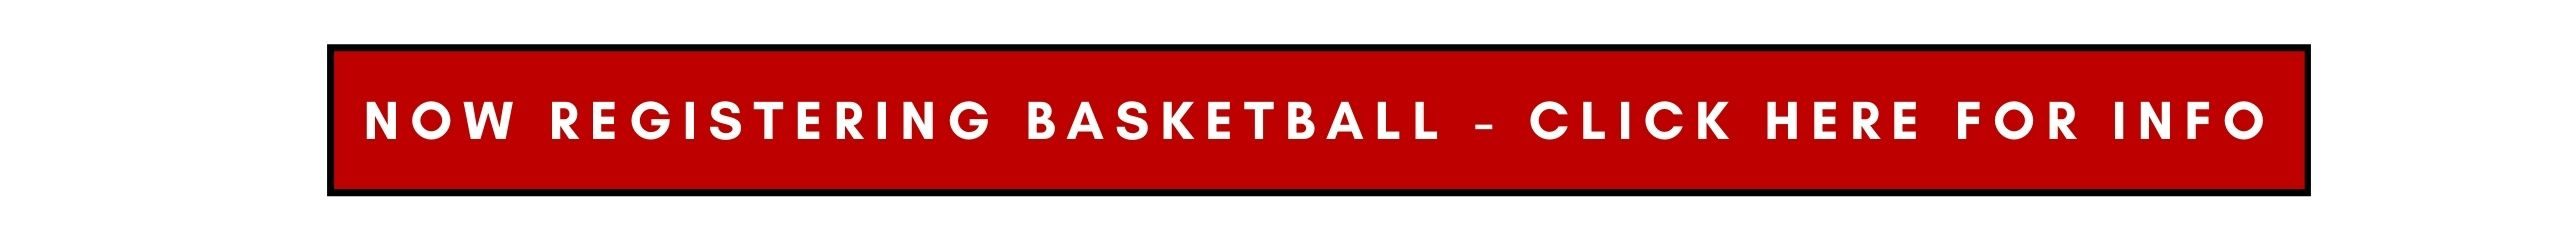 basketballavailable